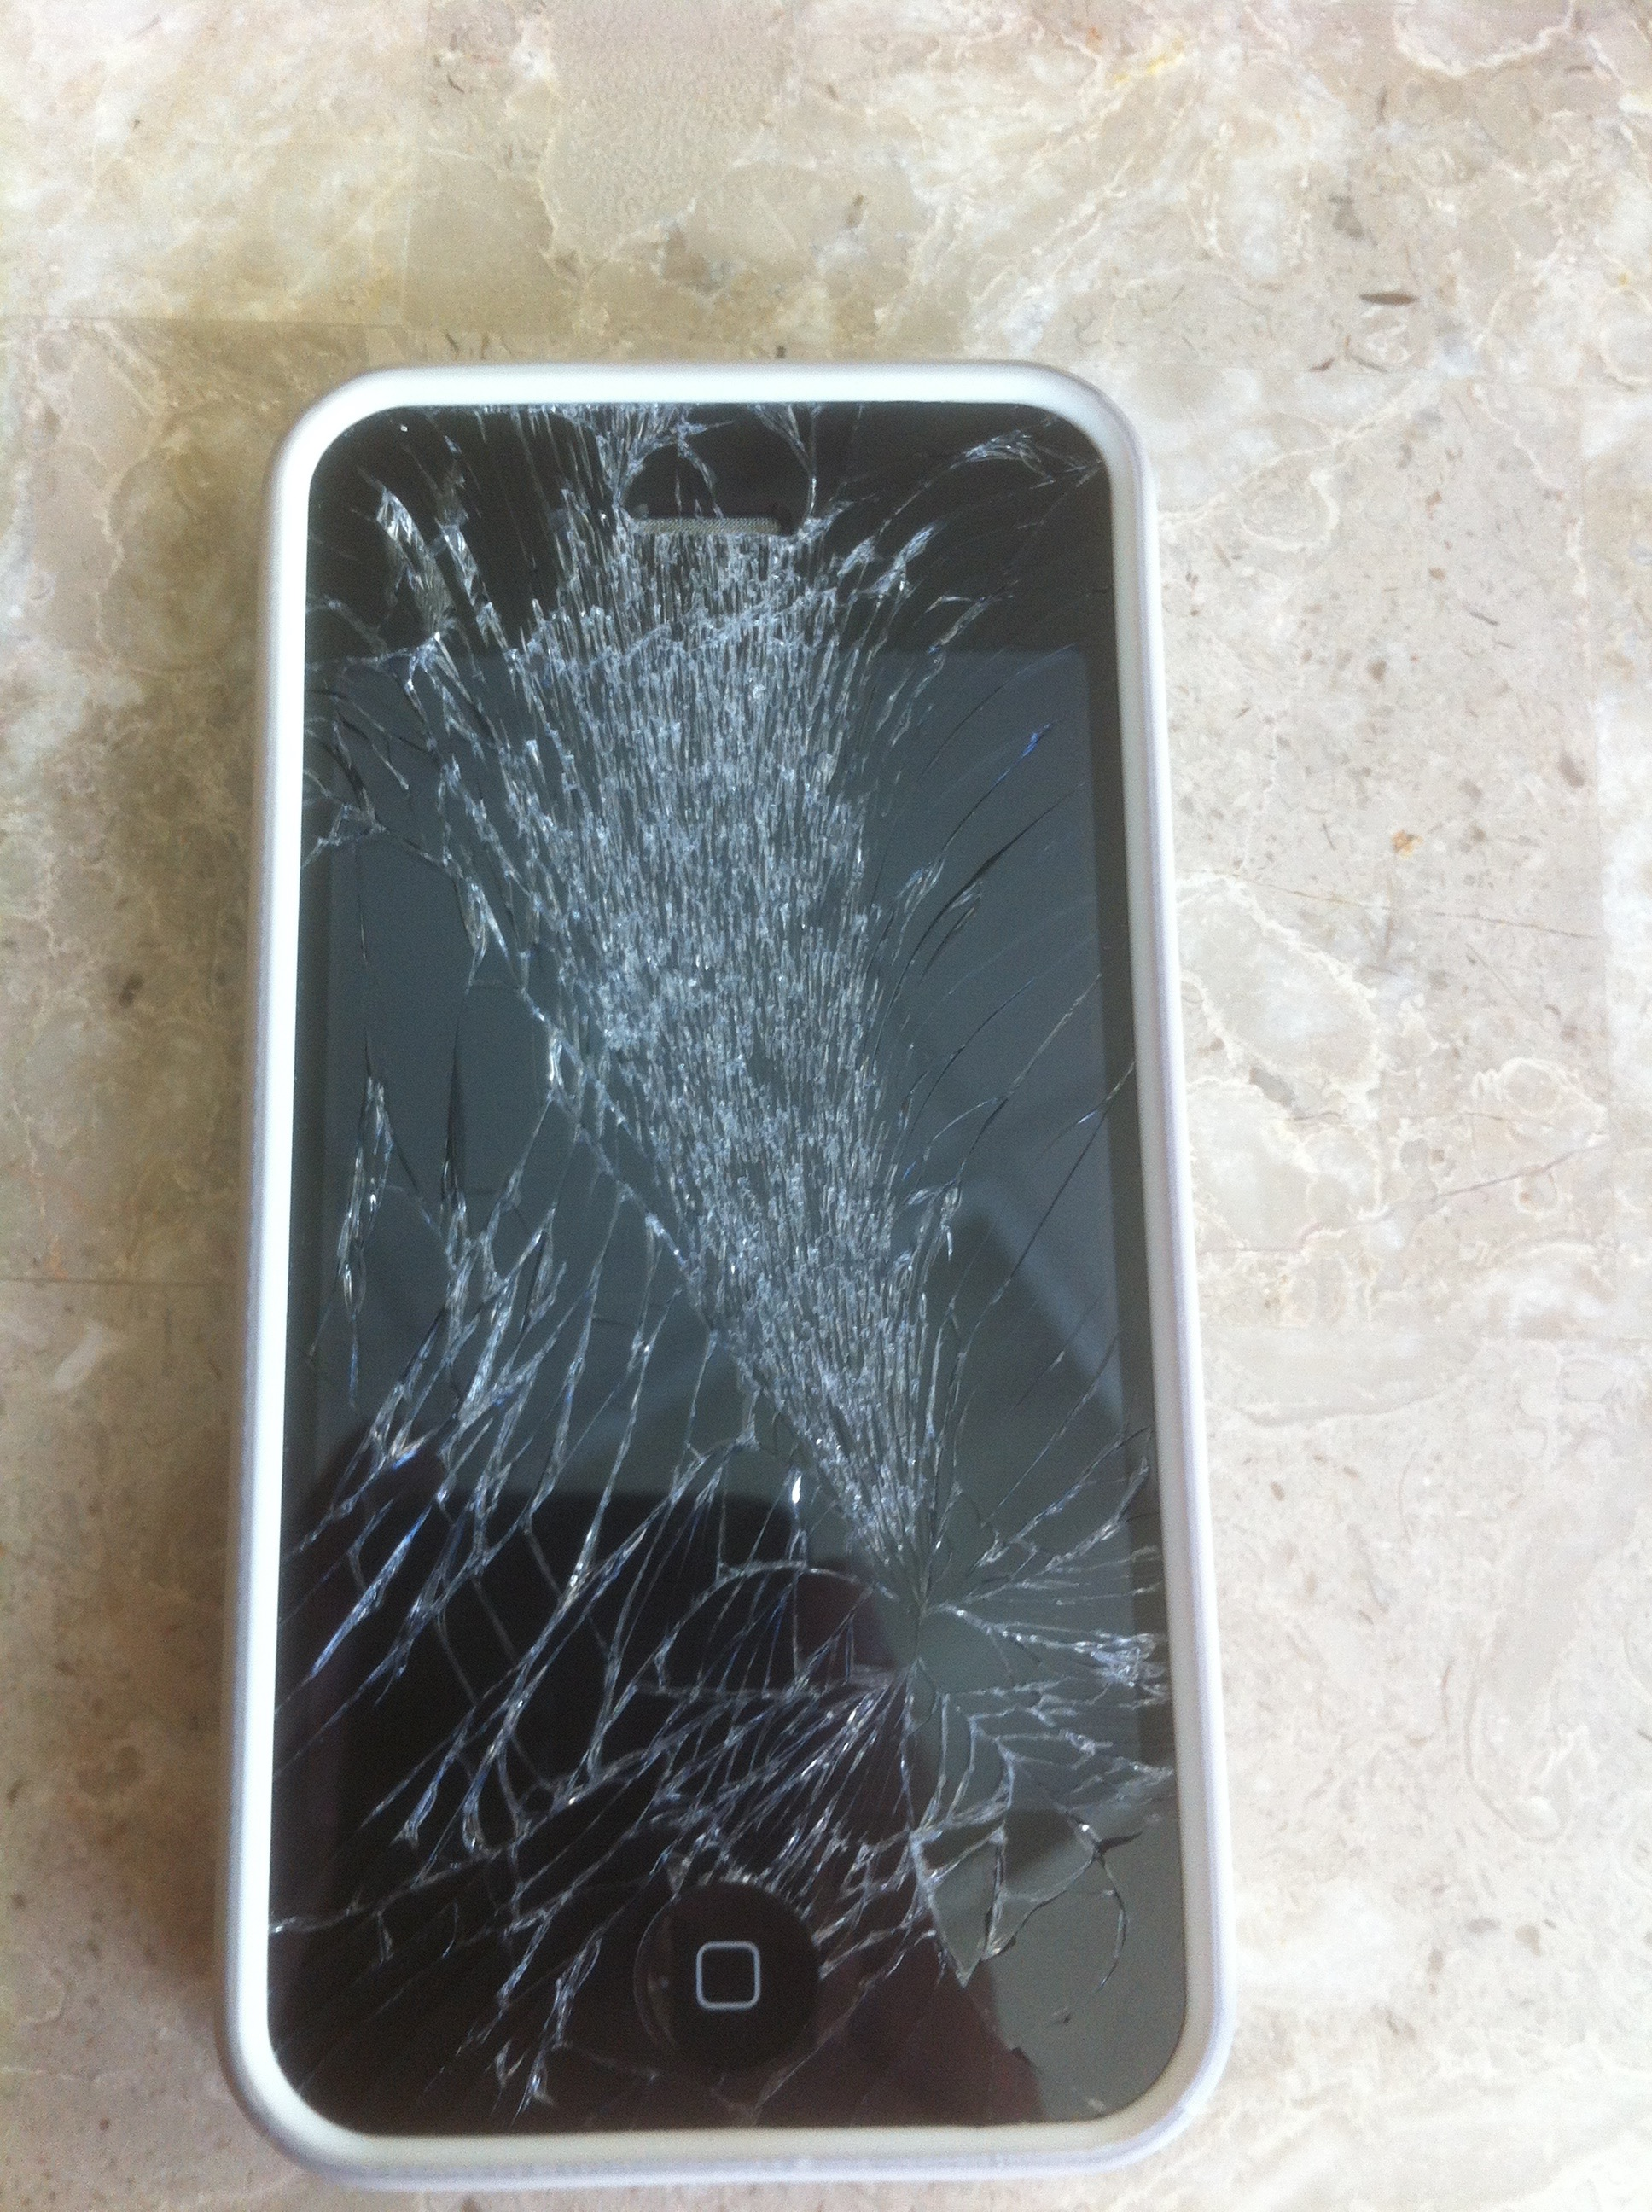 Ouch! My iPhone 5S Screen Shattered!